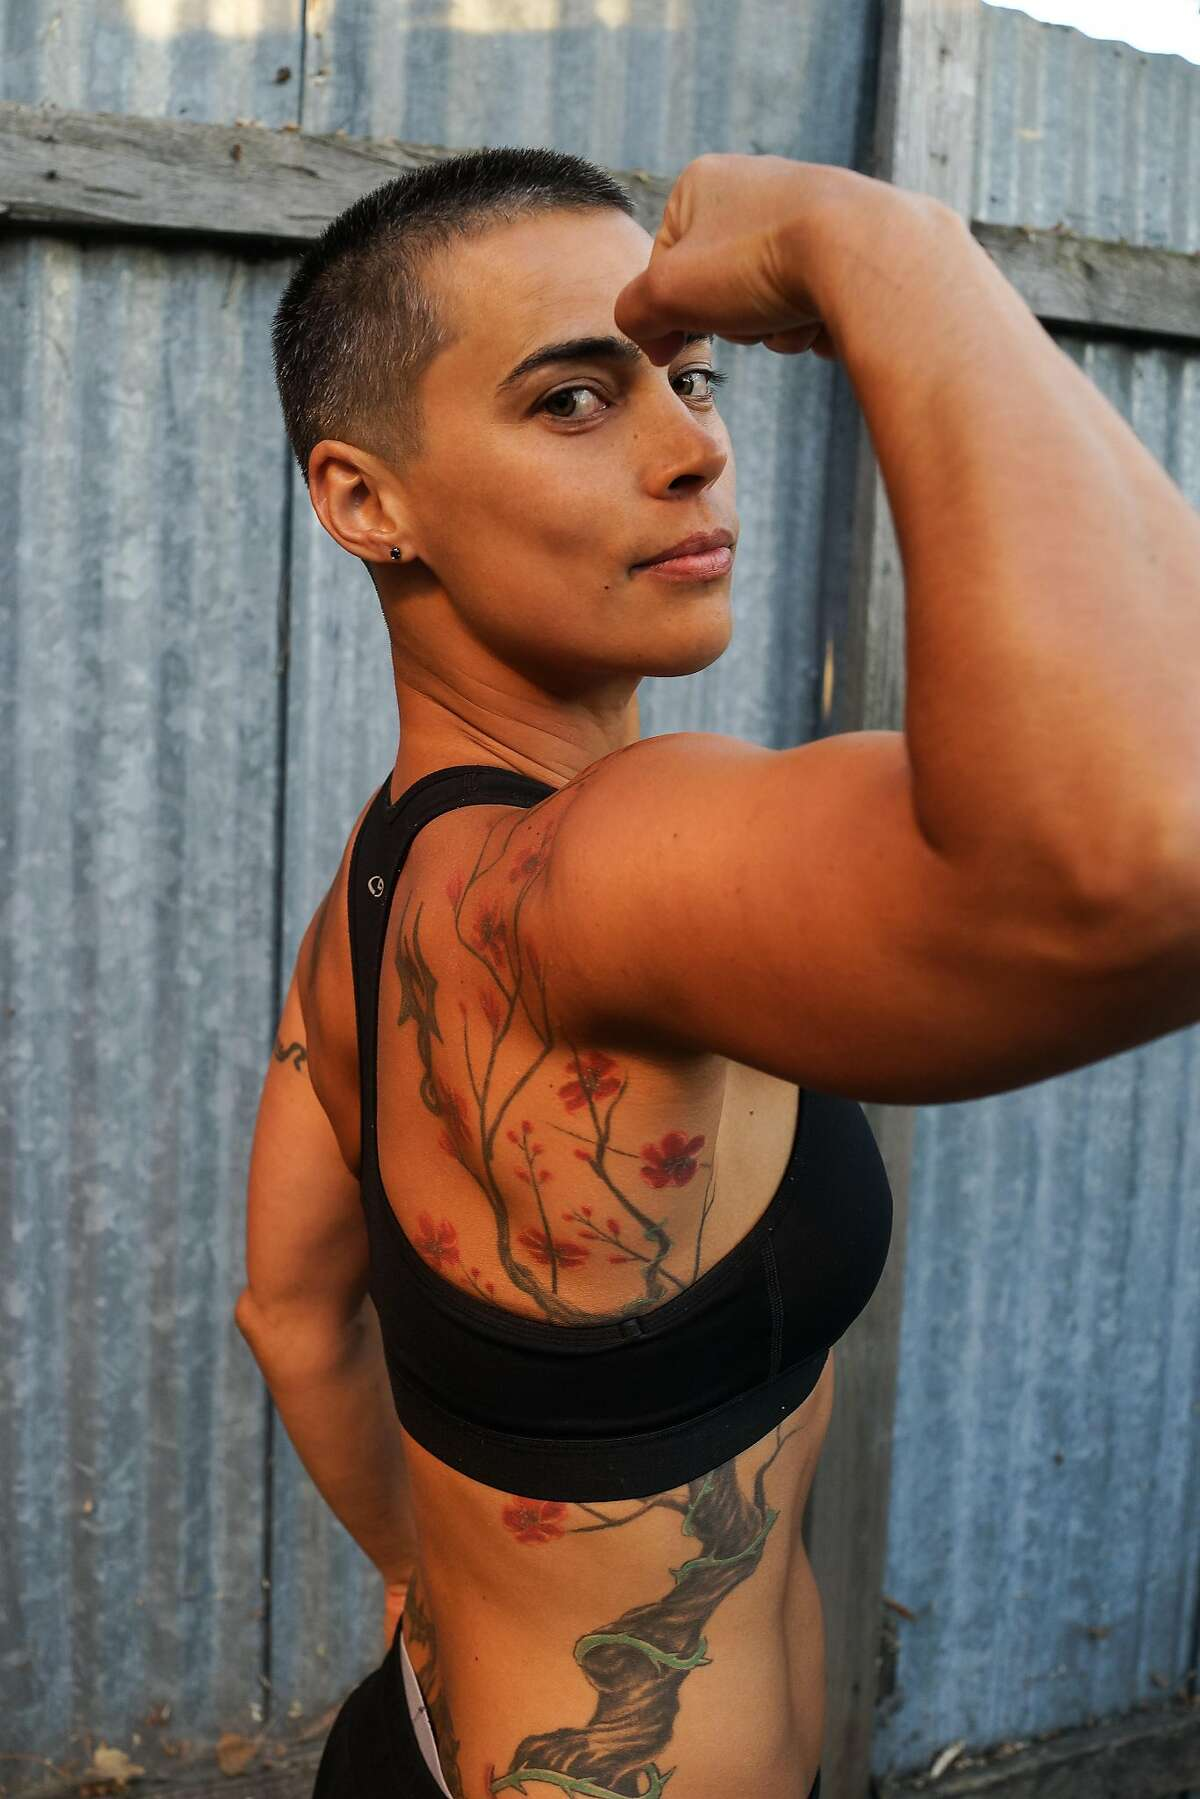 TRANS BODY BUILDER PROJECT, OAKLAND,CA AUGUST 2018